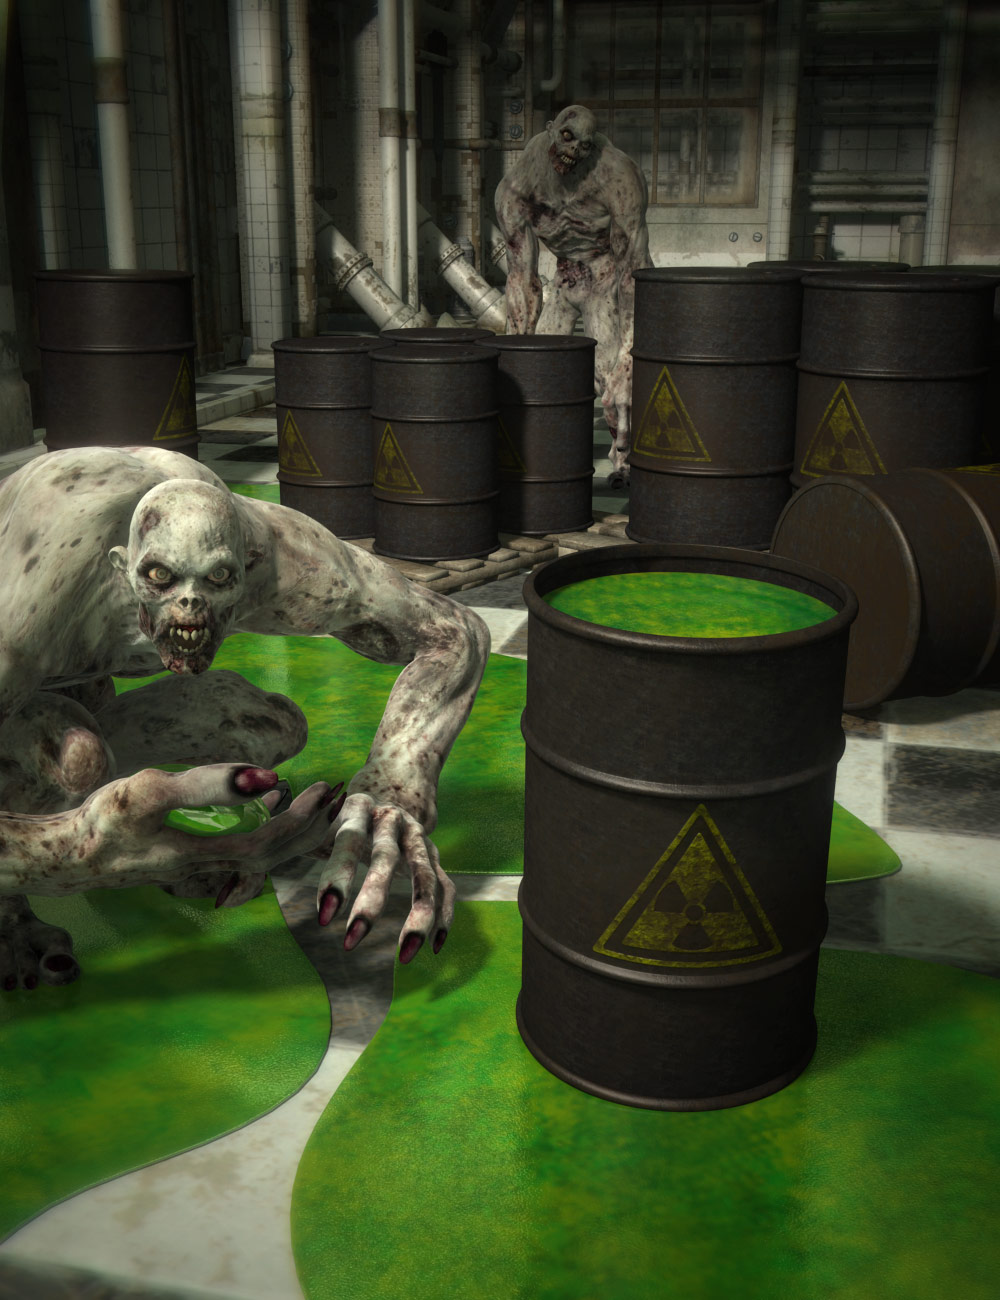 Toxic by: ARTCollab, 3D Models by Daz 3D